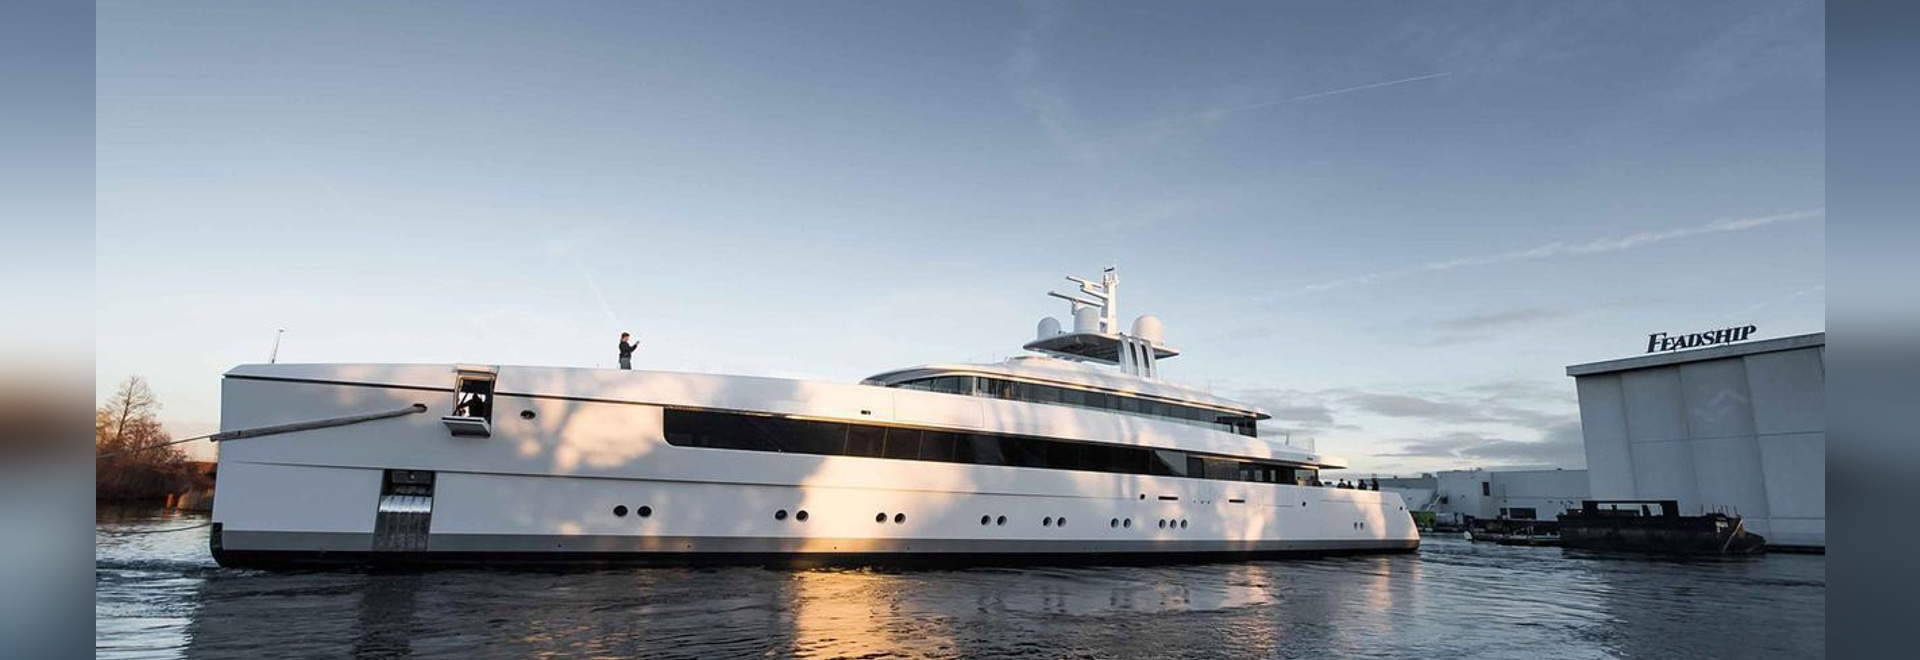 The yacht has now been named Najiba.Image courtesy of Tom Van Oossanen.